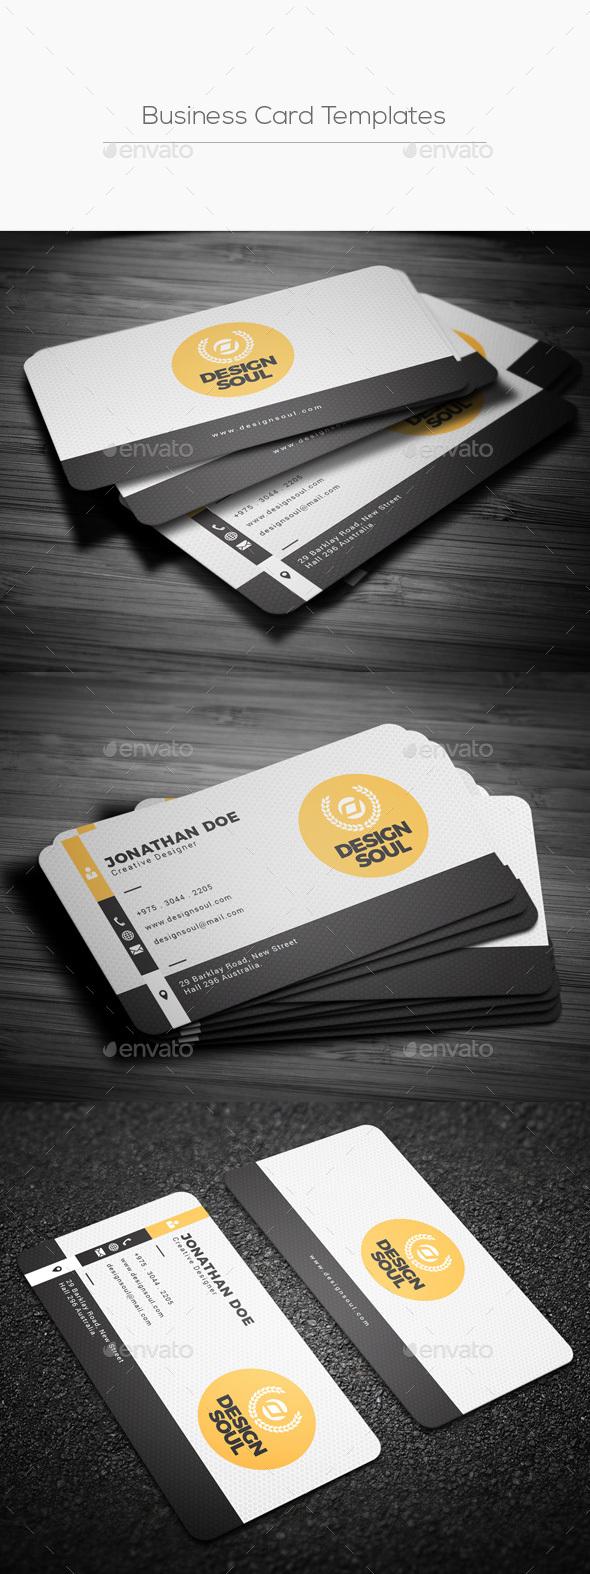 Business card templates designs from graphicriver flashek Gallery